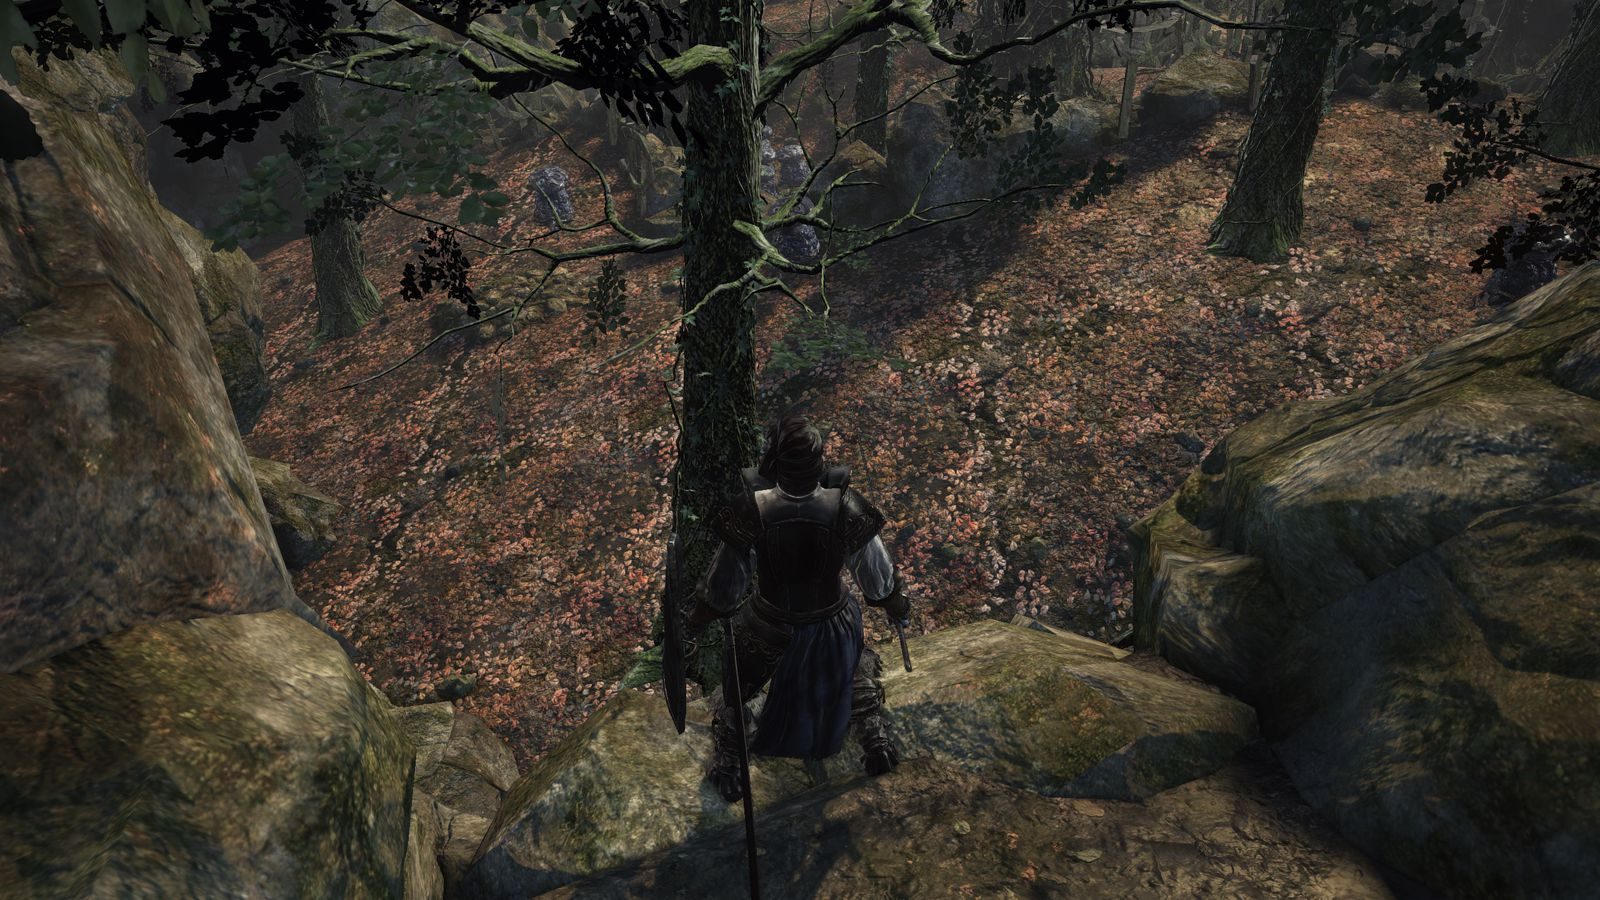 Dark Souls Ii Out Stunning Wallpapers High Quality: Dark Souls 3: Road Of Sacrifices Walkthrough